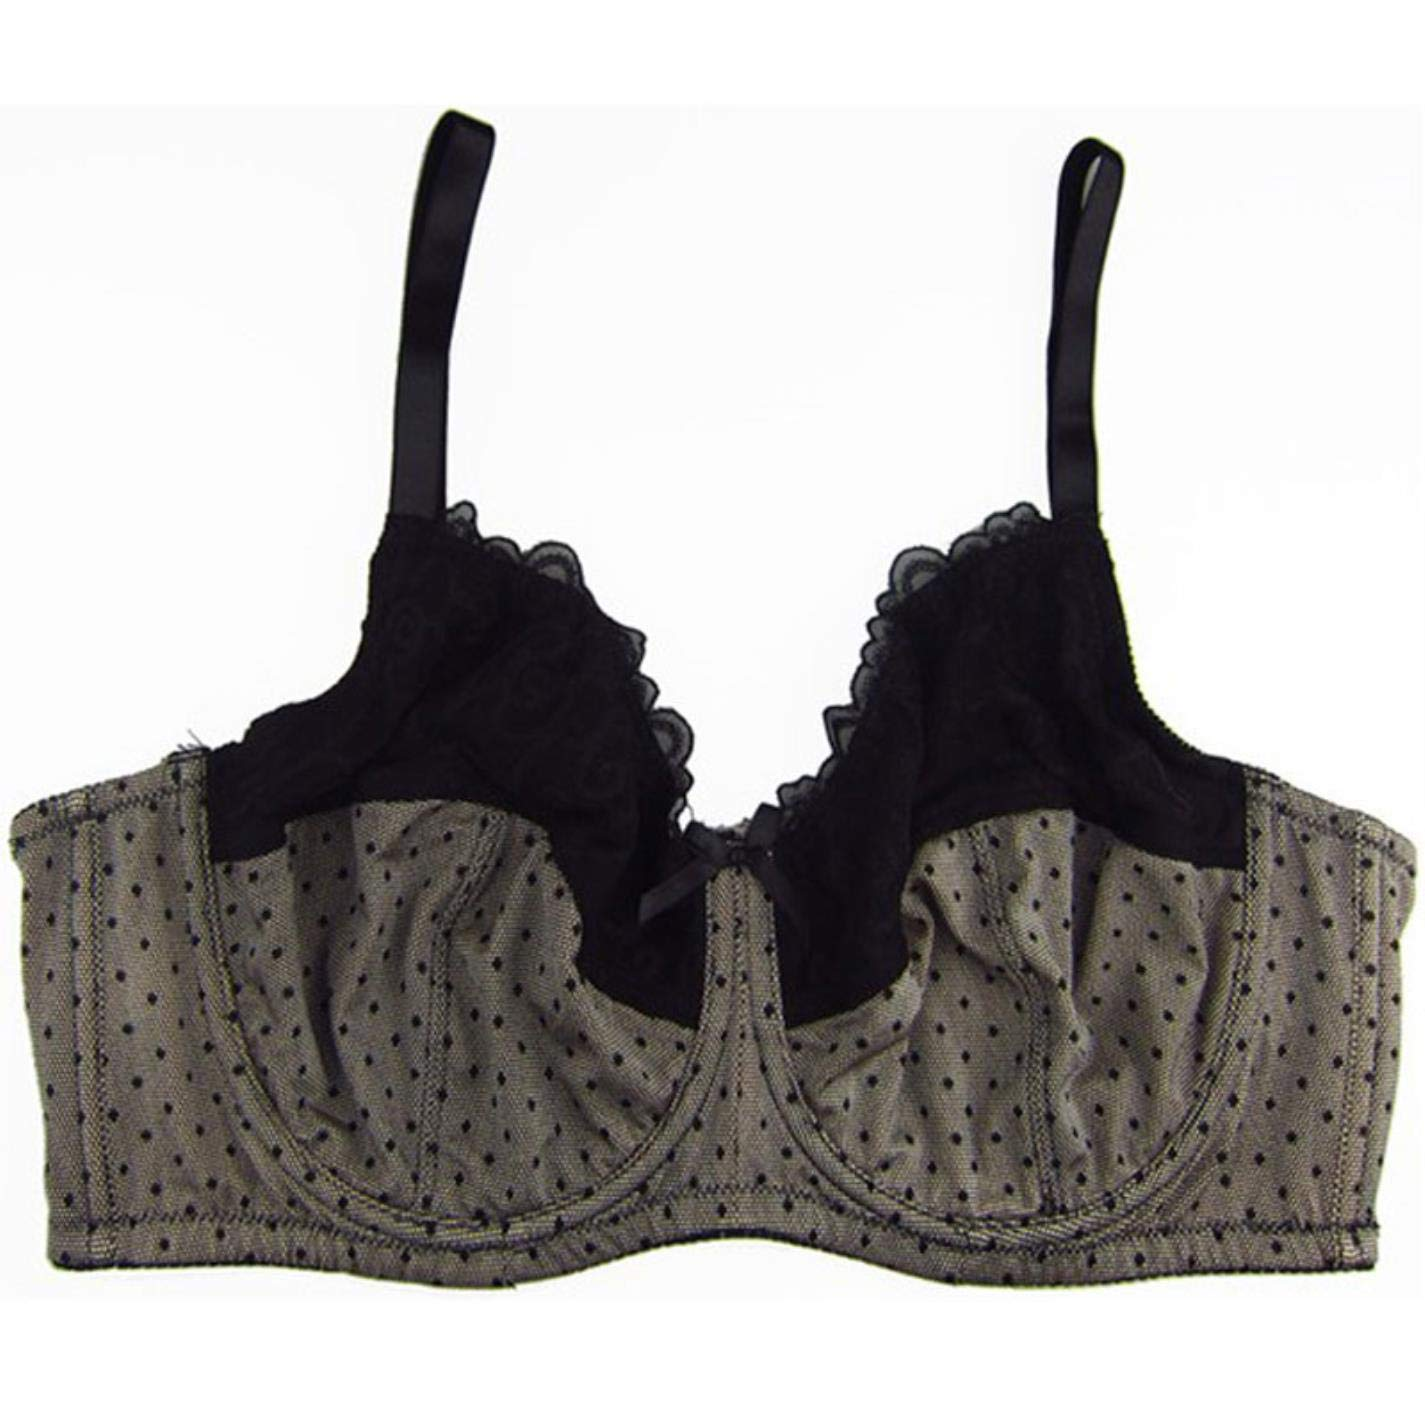 QtoOrEuN Women Unlined Printed Bra Plus Size Embroidery Full Cup Bra